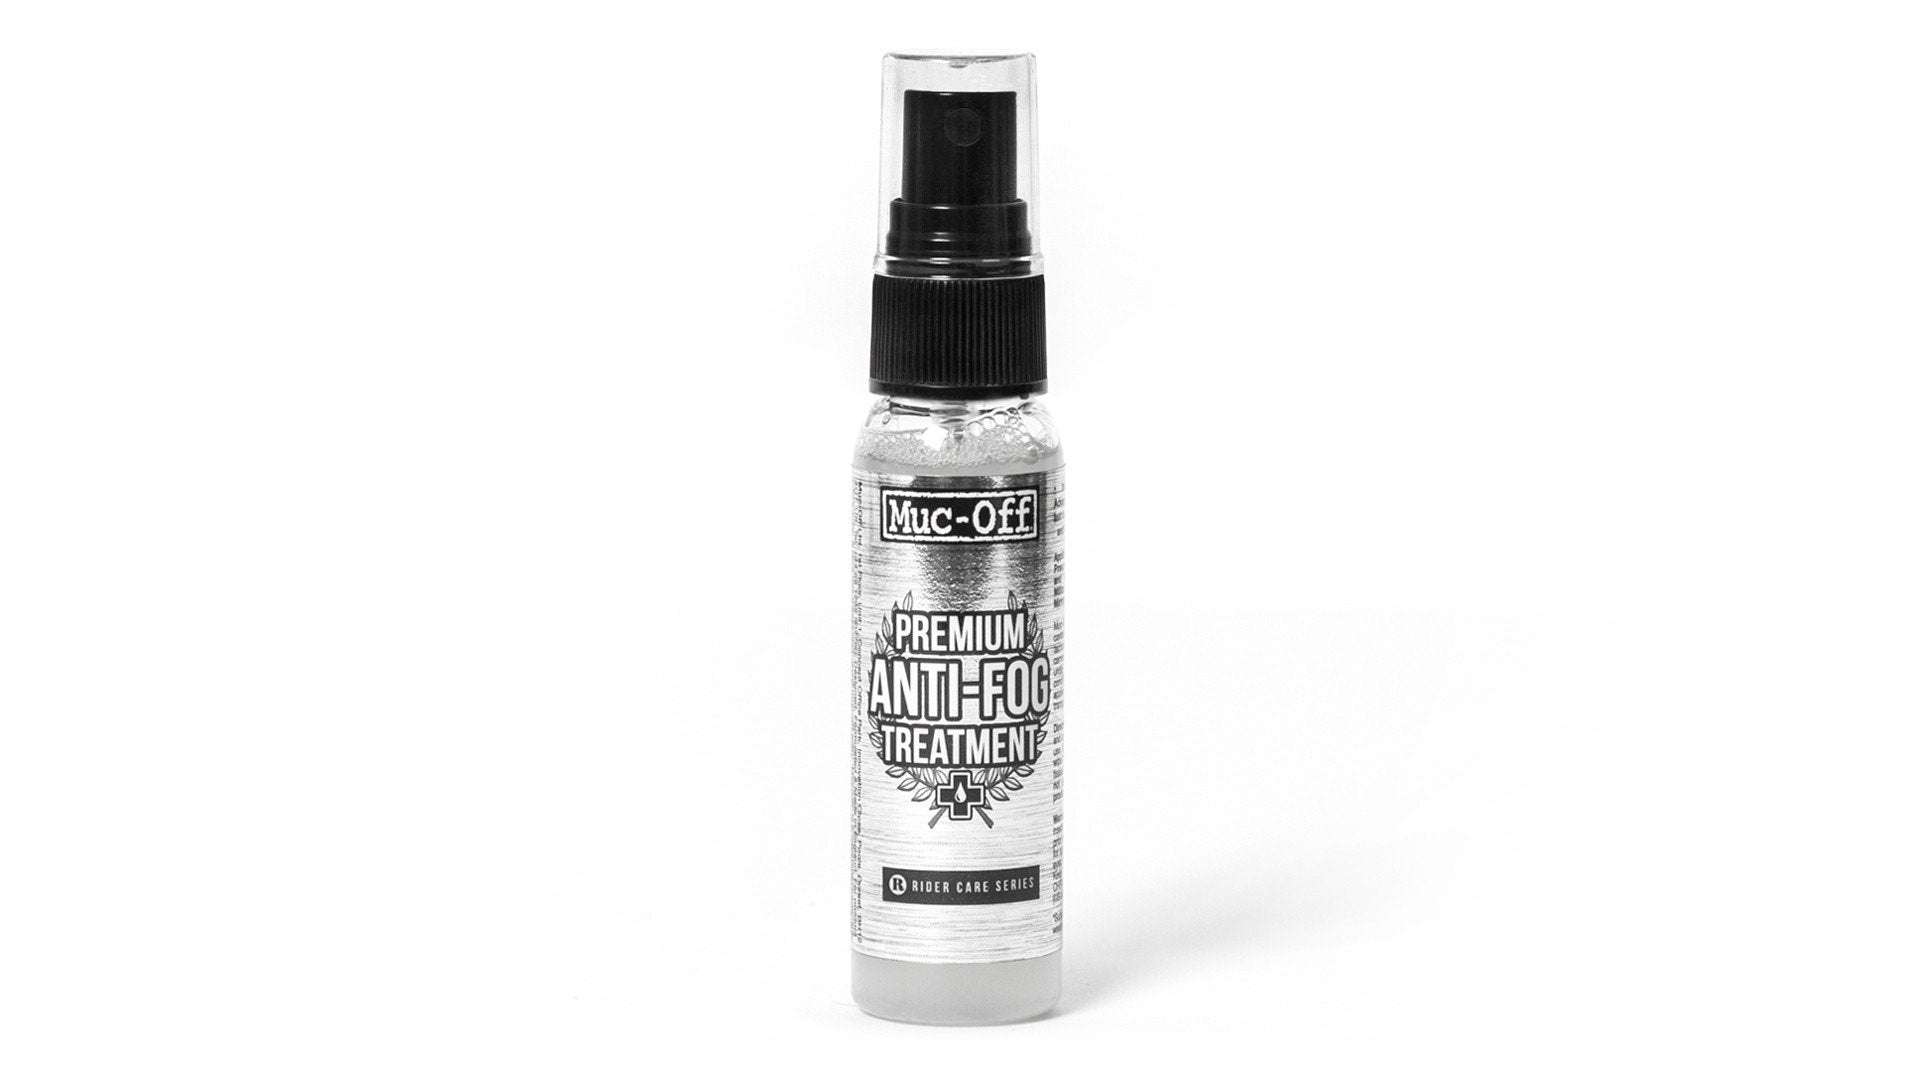 Anti-Fog Treatment - Muc-Off